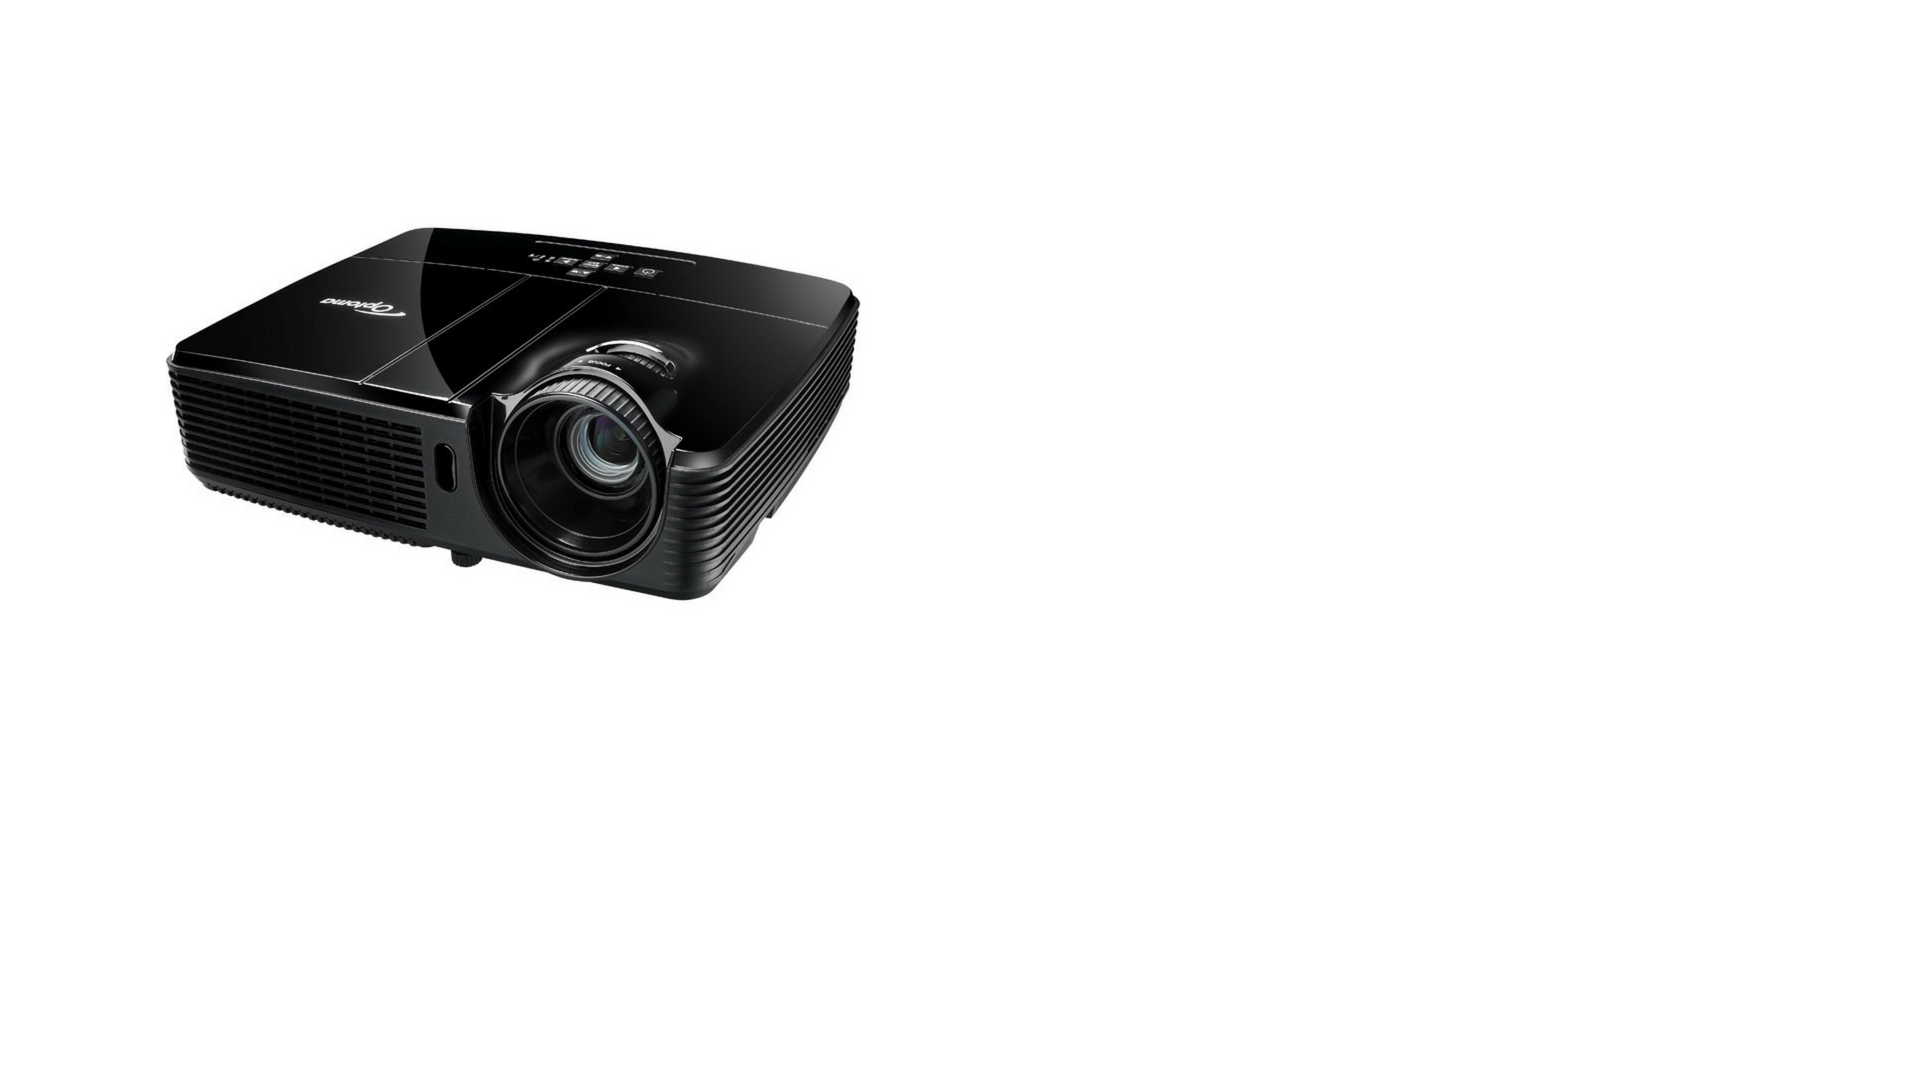 Rent a projector from Smart by the day of over a weekend